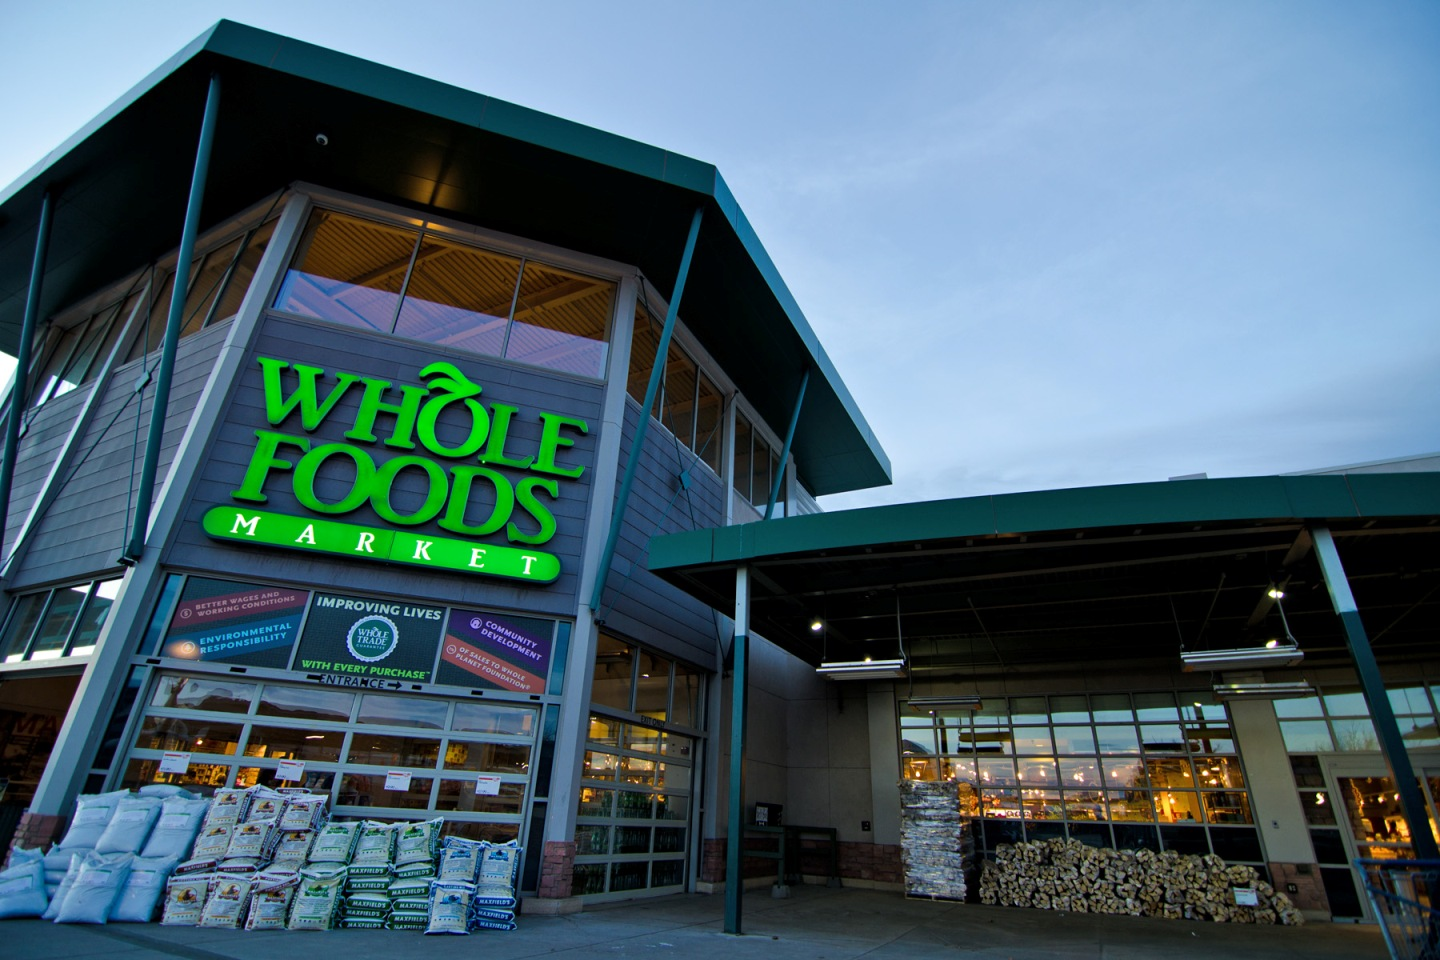 Seafood Firms Wild Planet and Luke's Lobster Win Whole Foods 'Global Supplier of the Year' Awards